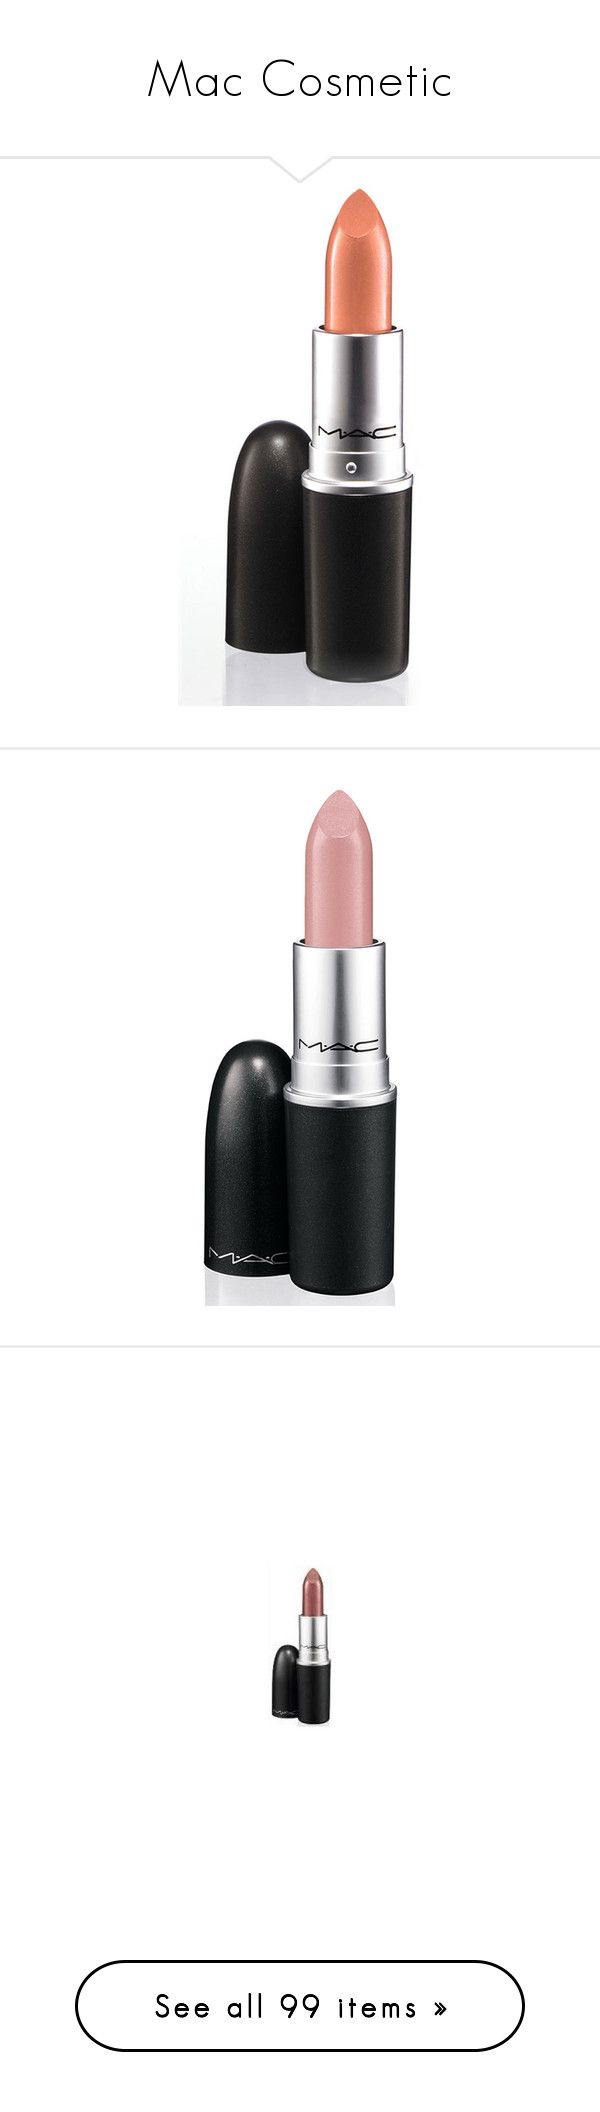 """""""Mac Cosmetic"""" by beautyoftherain ❤ liked on Polyvore featuring beauty products, makeup, lip makeup, lipstick, beauty, cosmetics, lips, women, mac cosmetics lipstick and mac cosmetics"""